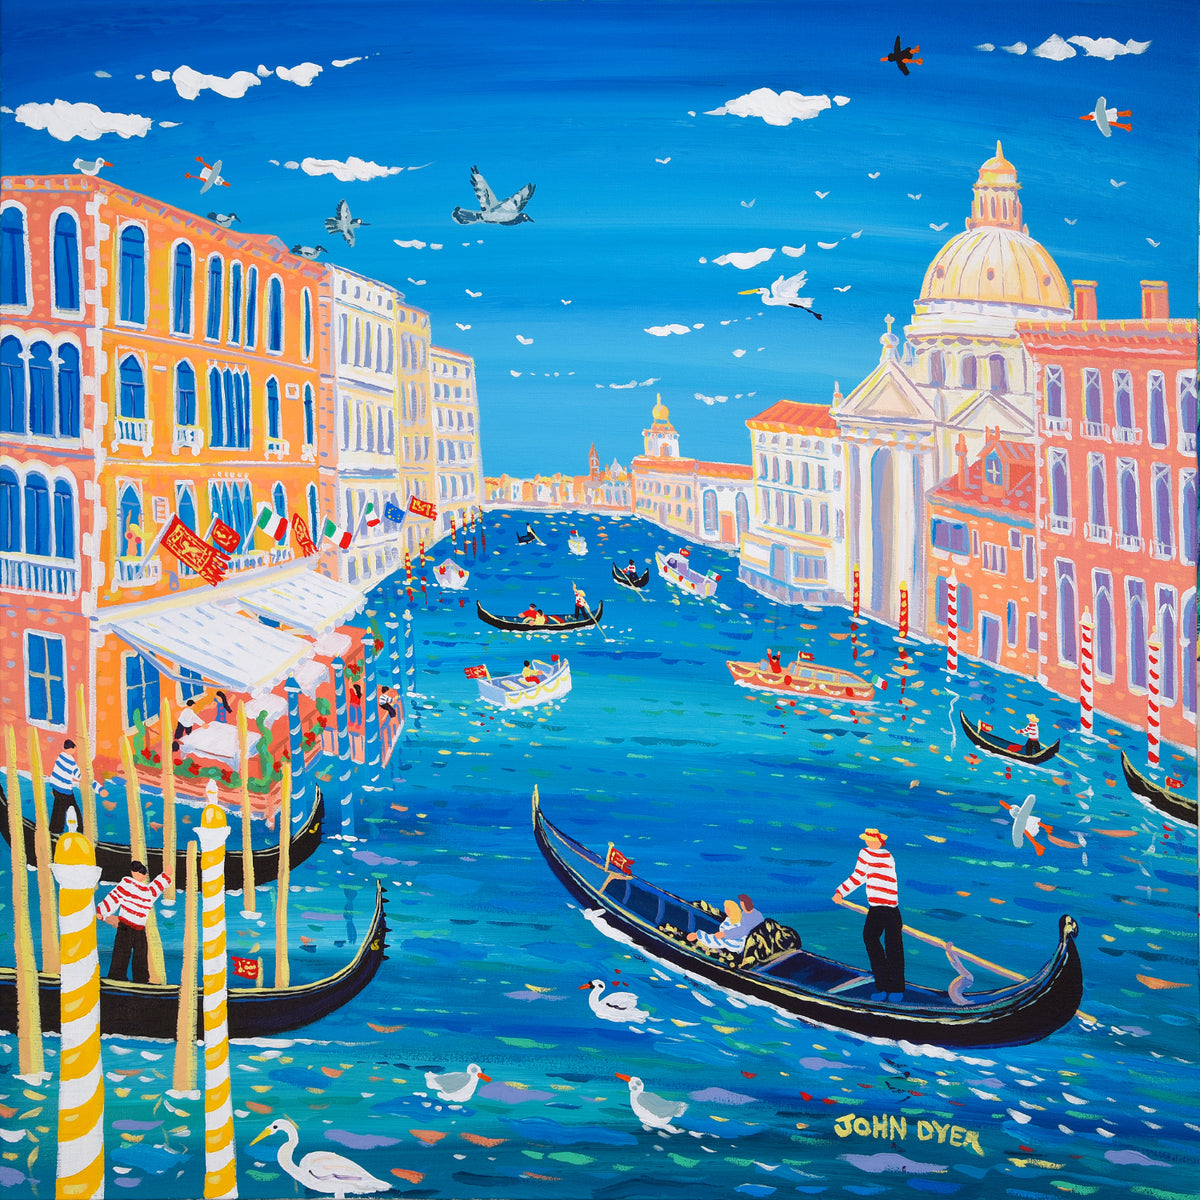 John Dyer Painting. Love on the Water, Venice. 